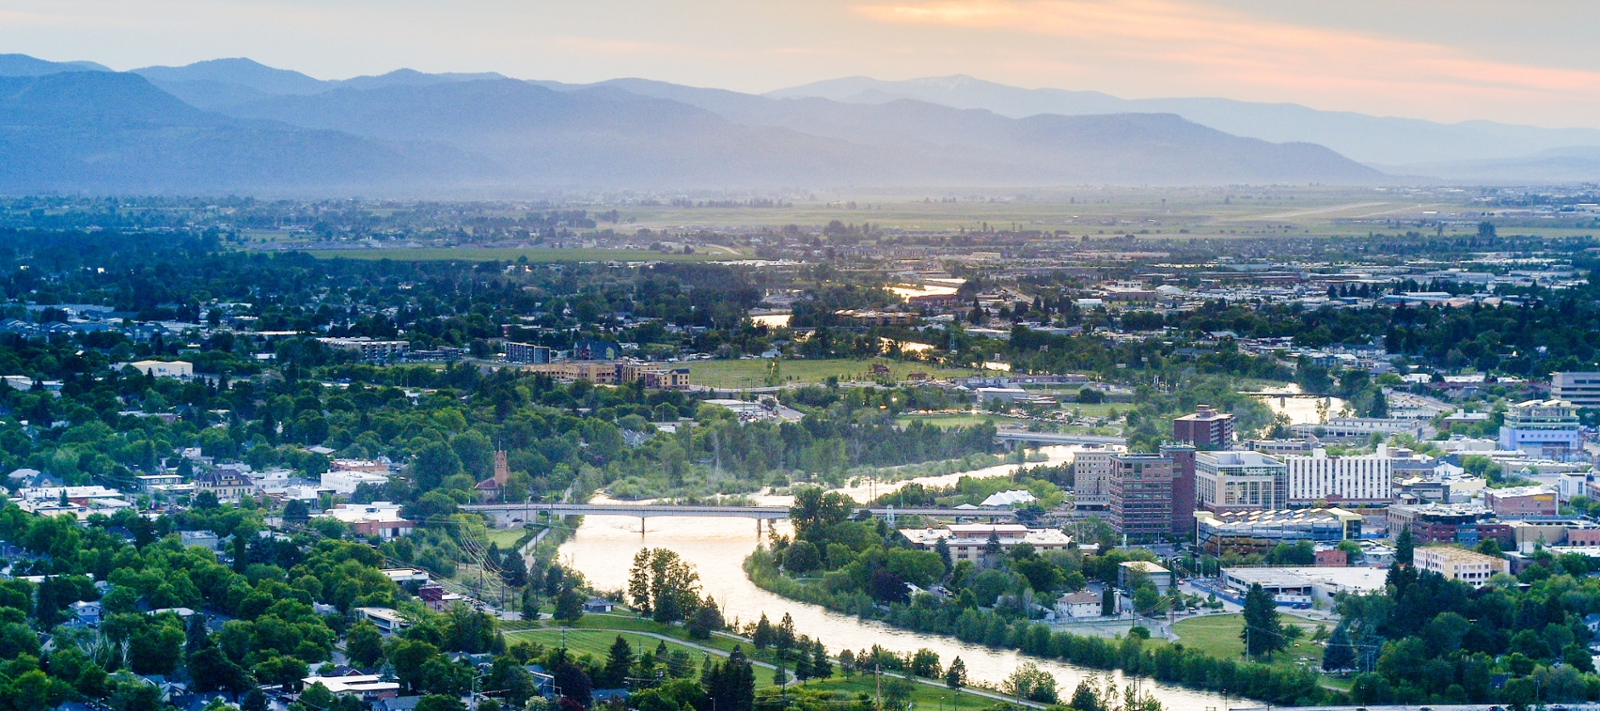 View of Missoula